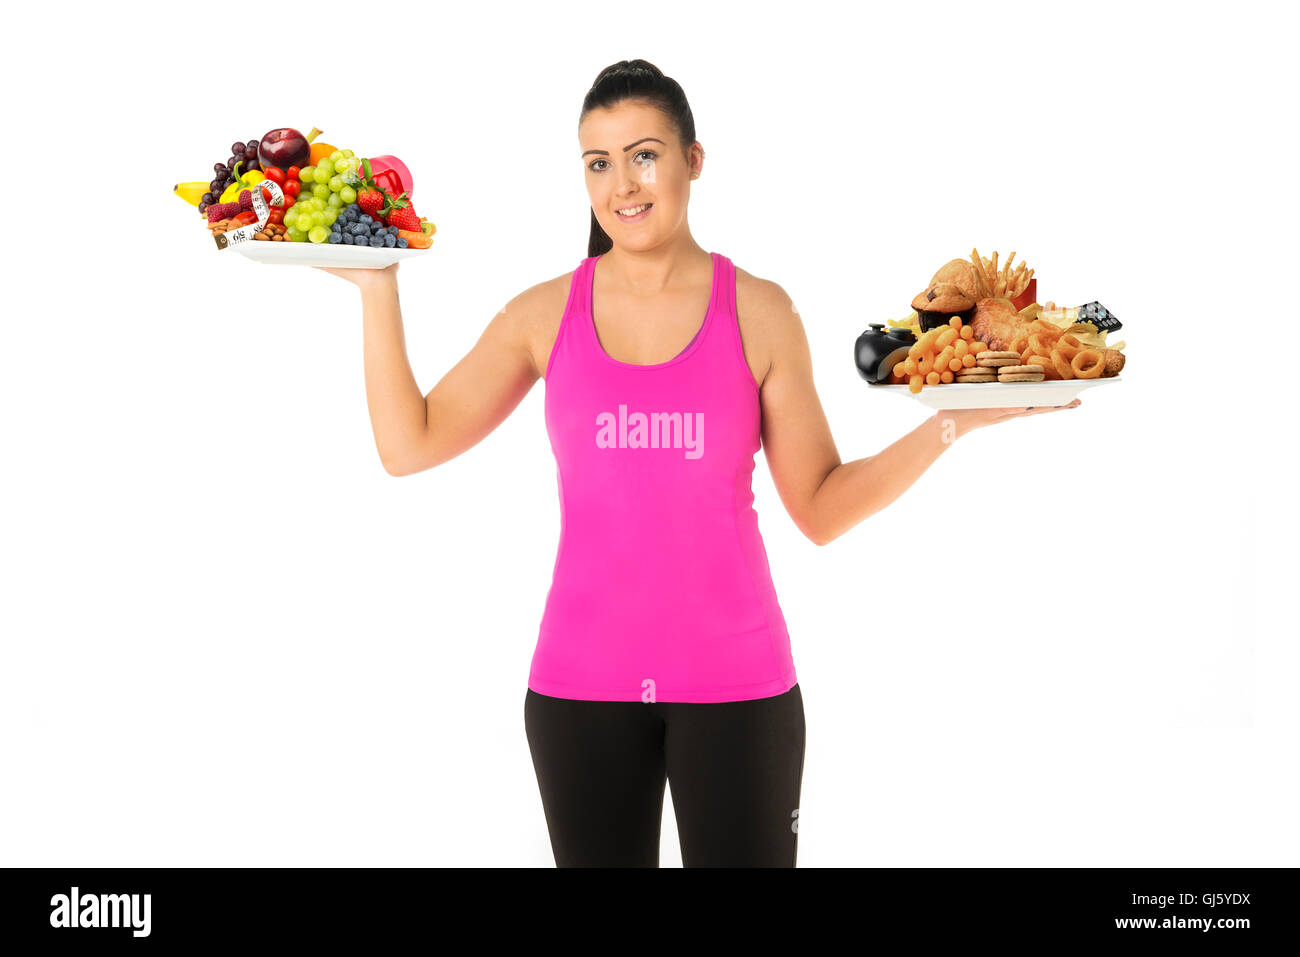 Healthy  or unhealthy lifestyle concept young woman holding two plates of food one unhealthy the other healthy choose - Stock Image